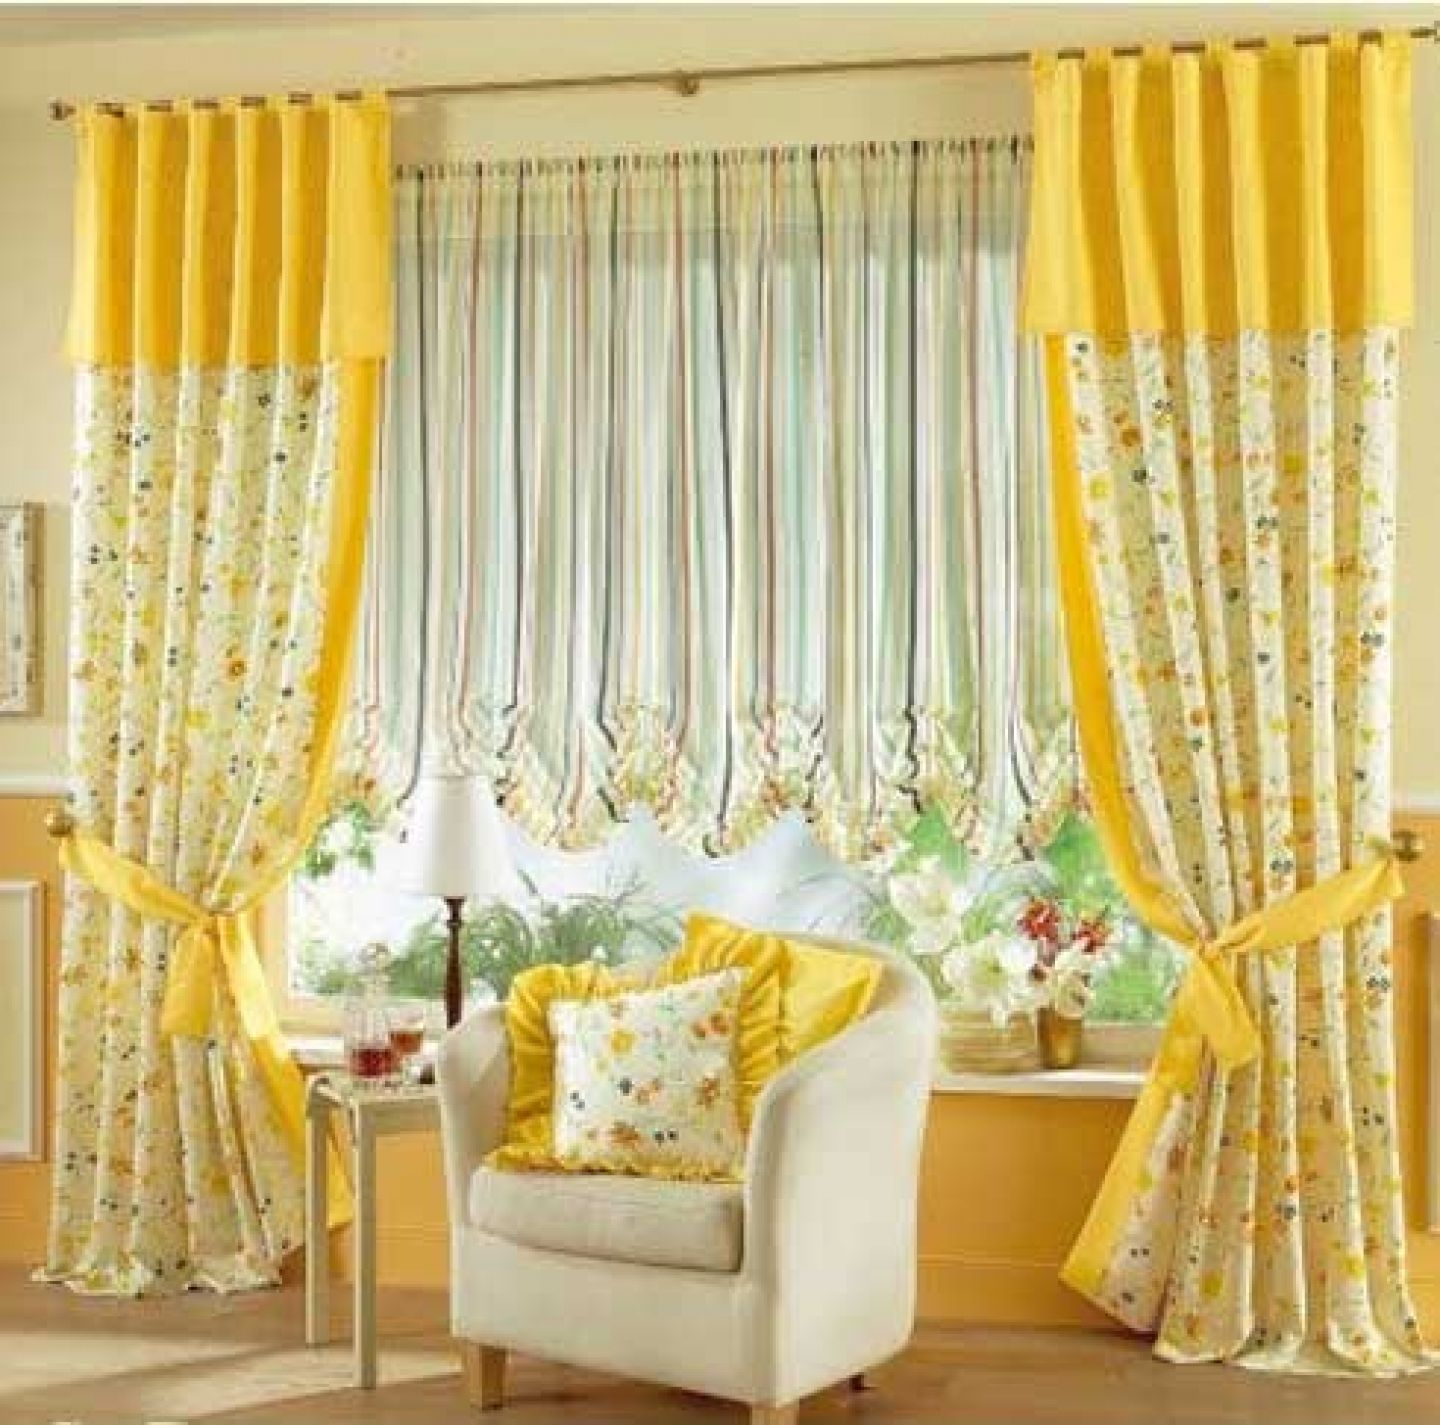 Interior Vibrant Yellow Window Curtain Designs For Living Room Curtain -  pictures, photos, images